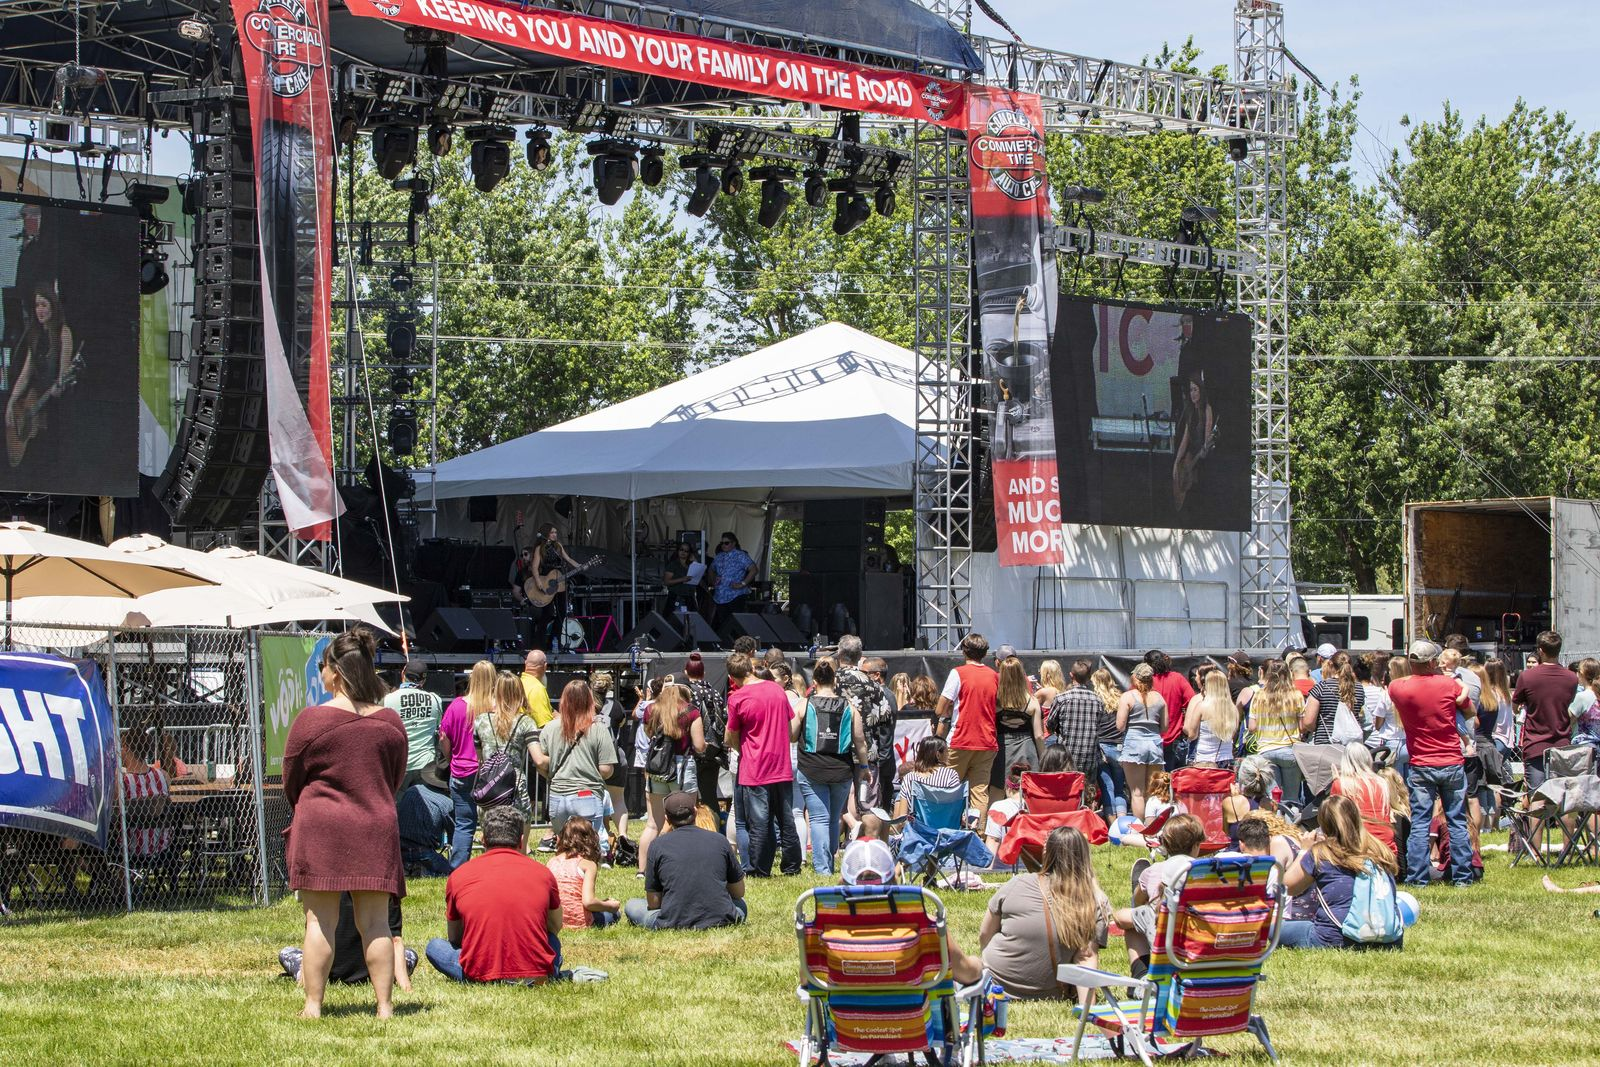 The Boise Music Festival is in full swing at Expo Idaho. The annual event draws large crowds and features celebrity headliners like this years main act, Pit Bull. (Photos by Axel Quartarone){ }